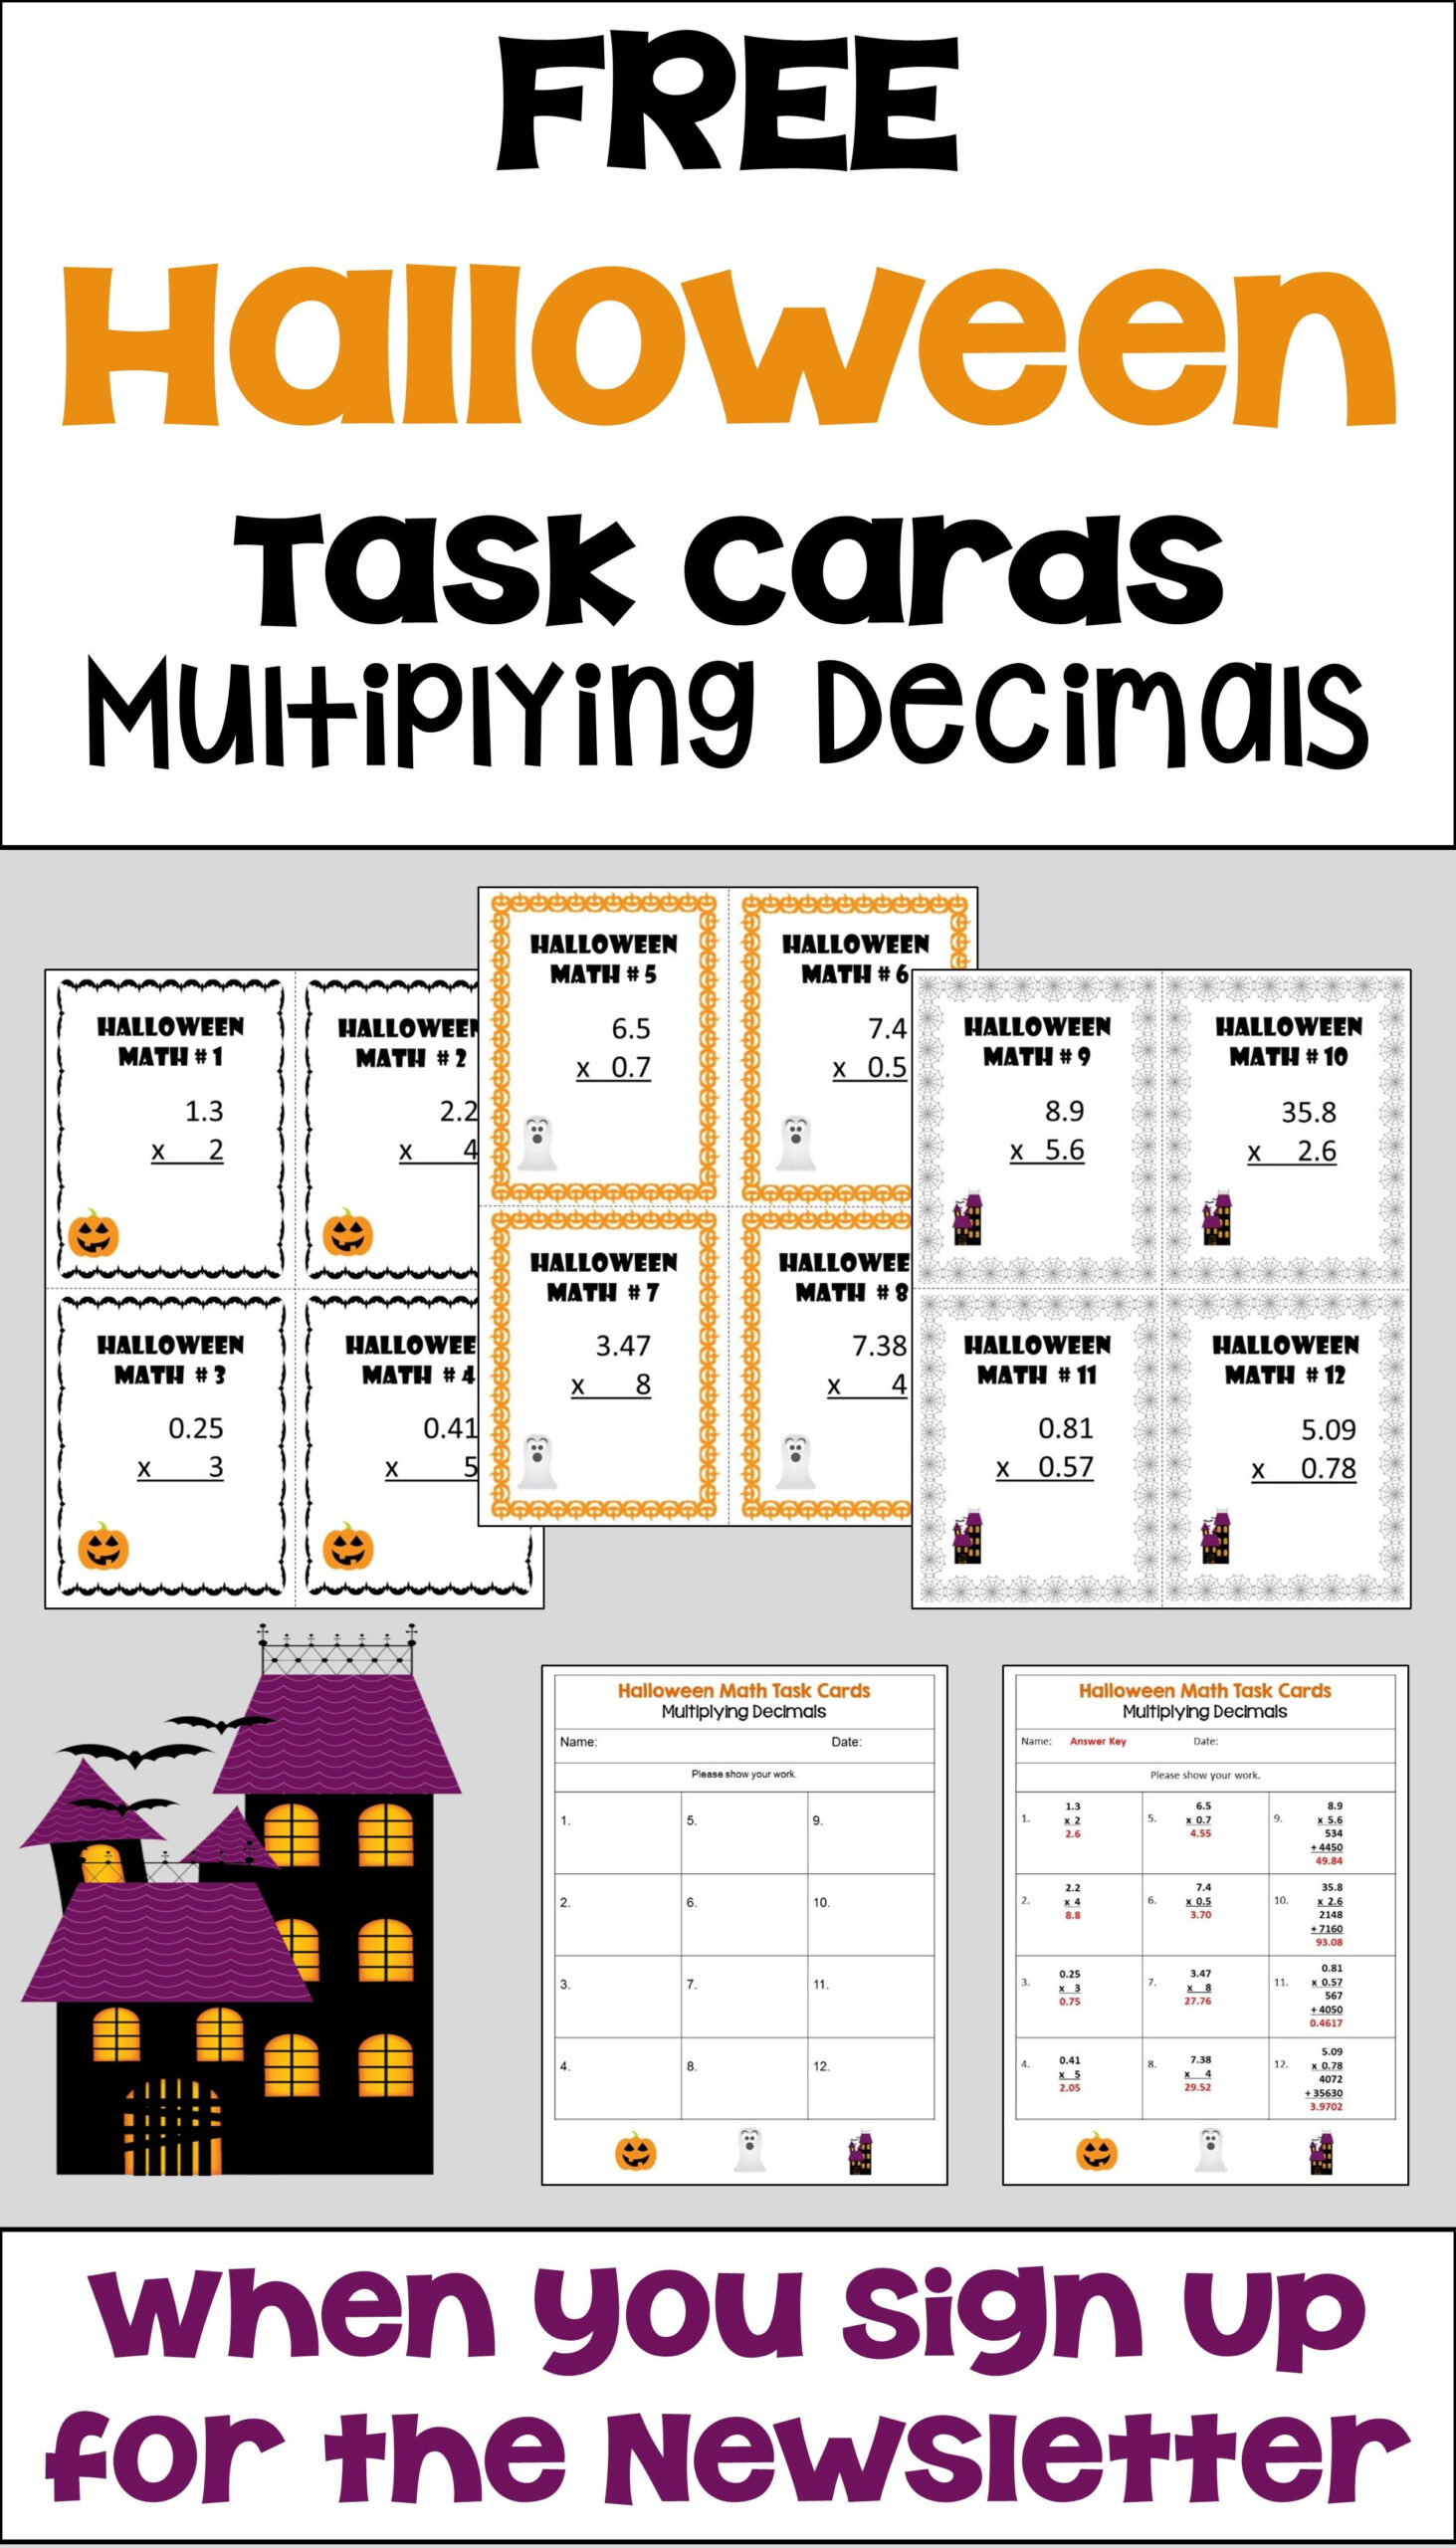 Free Halloween Task Cards For Multiplying Decimals